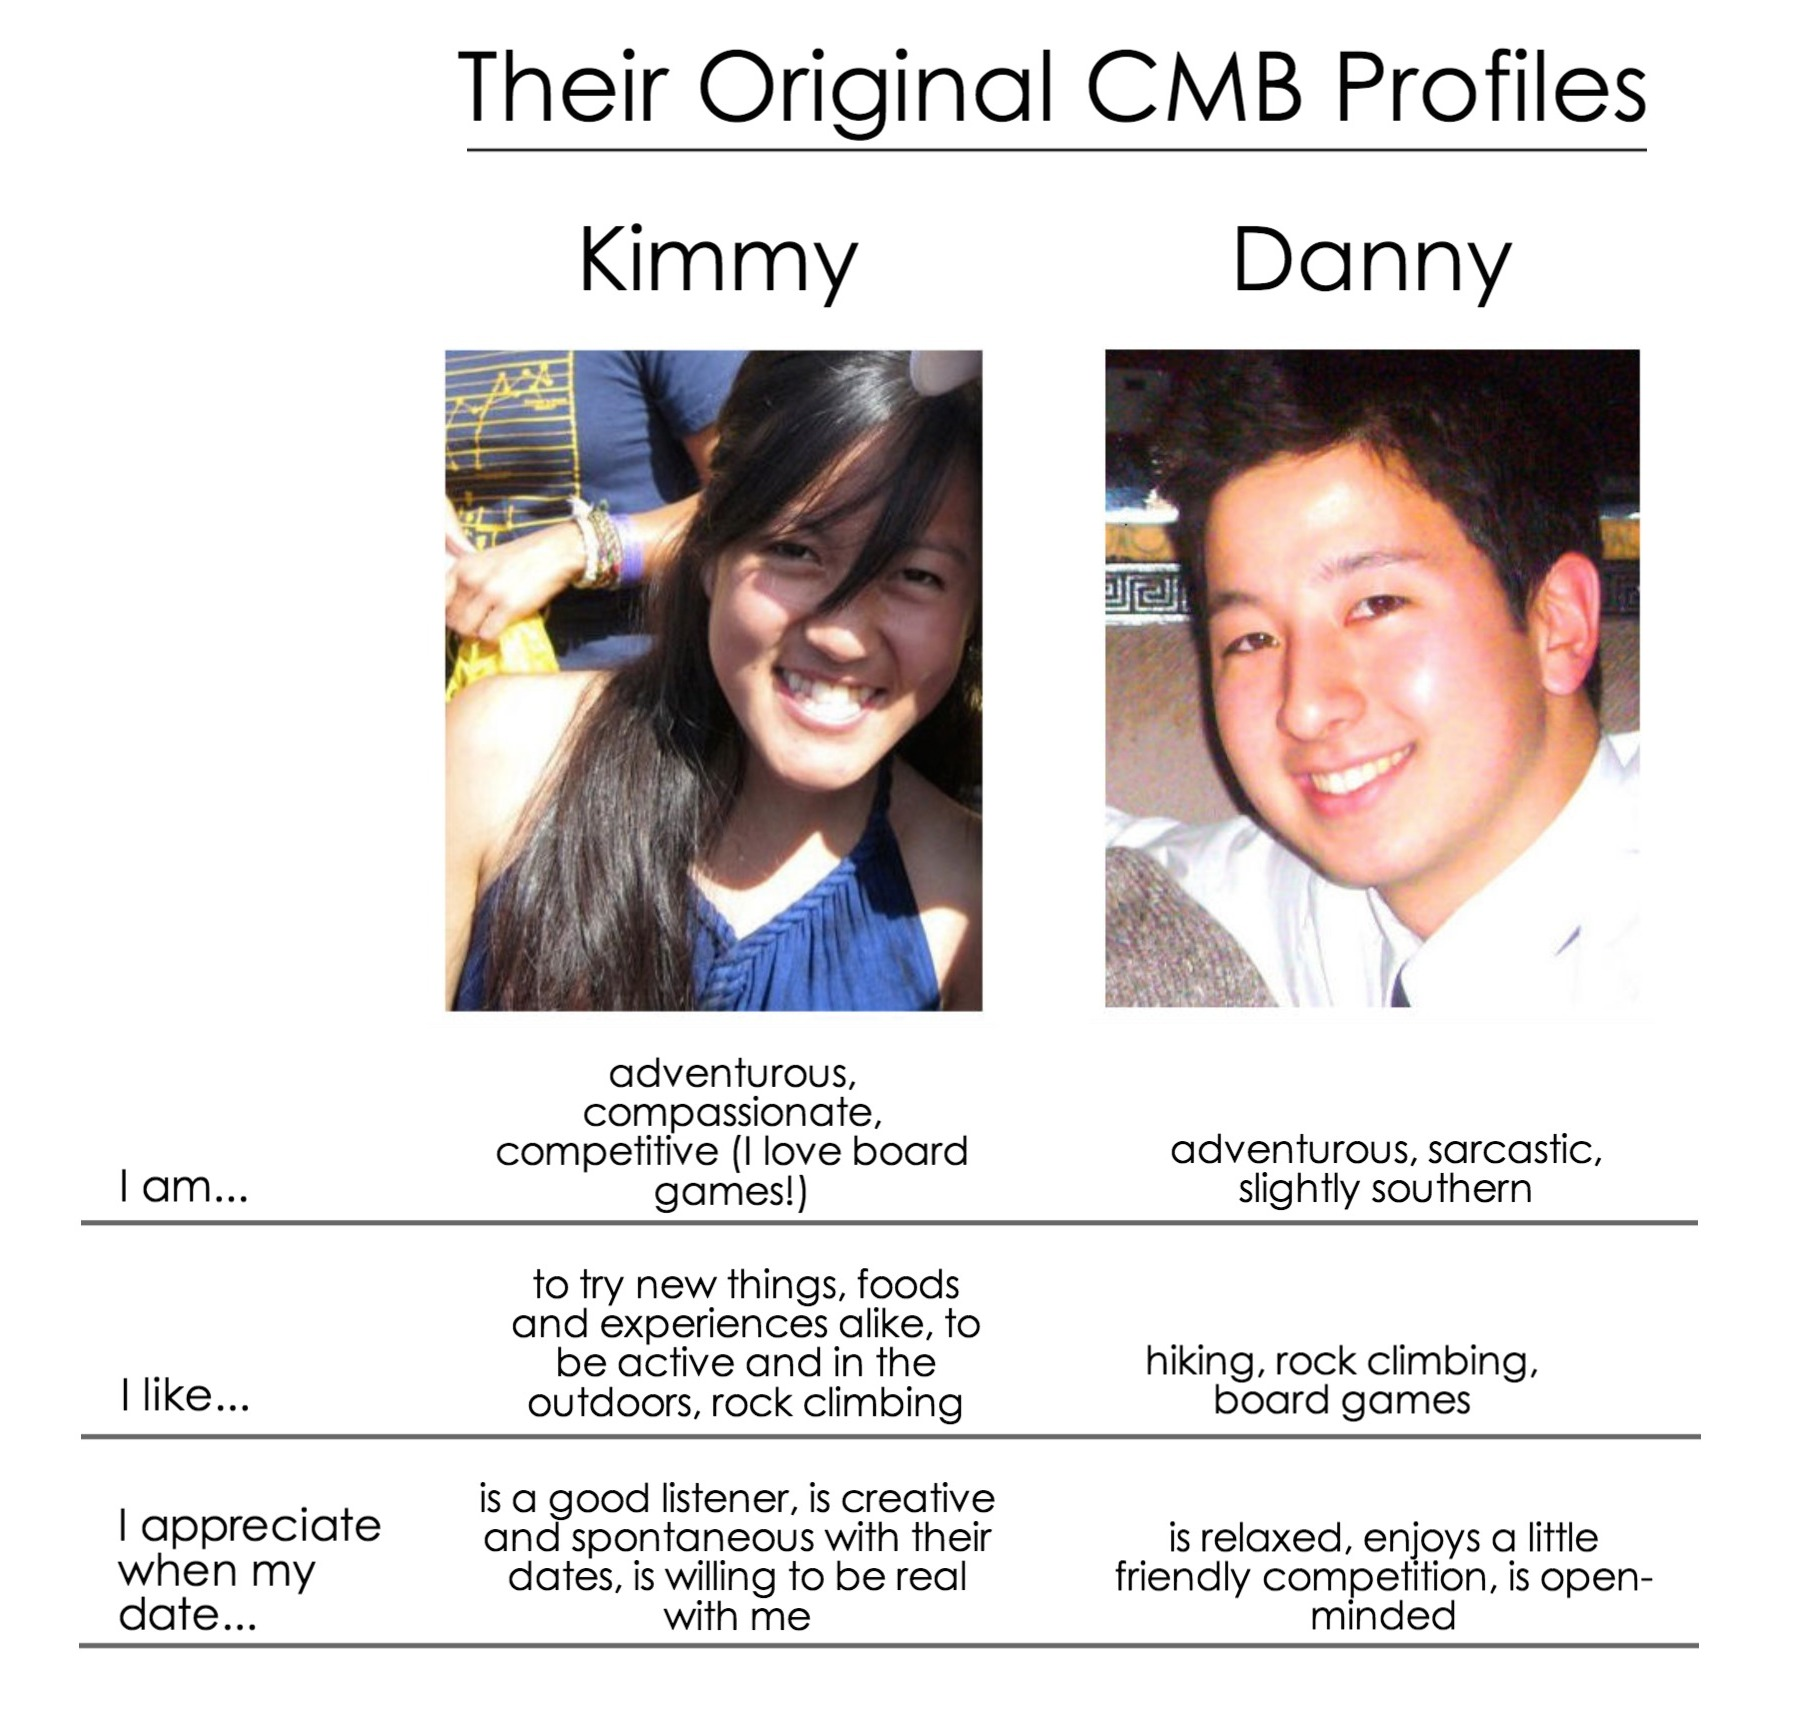 Danny And Kimmy's Profiles